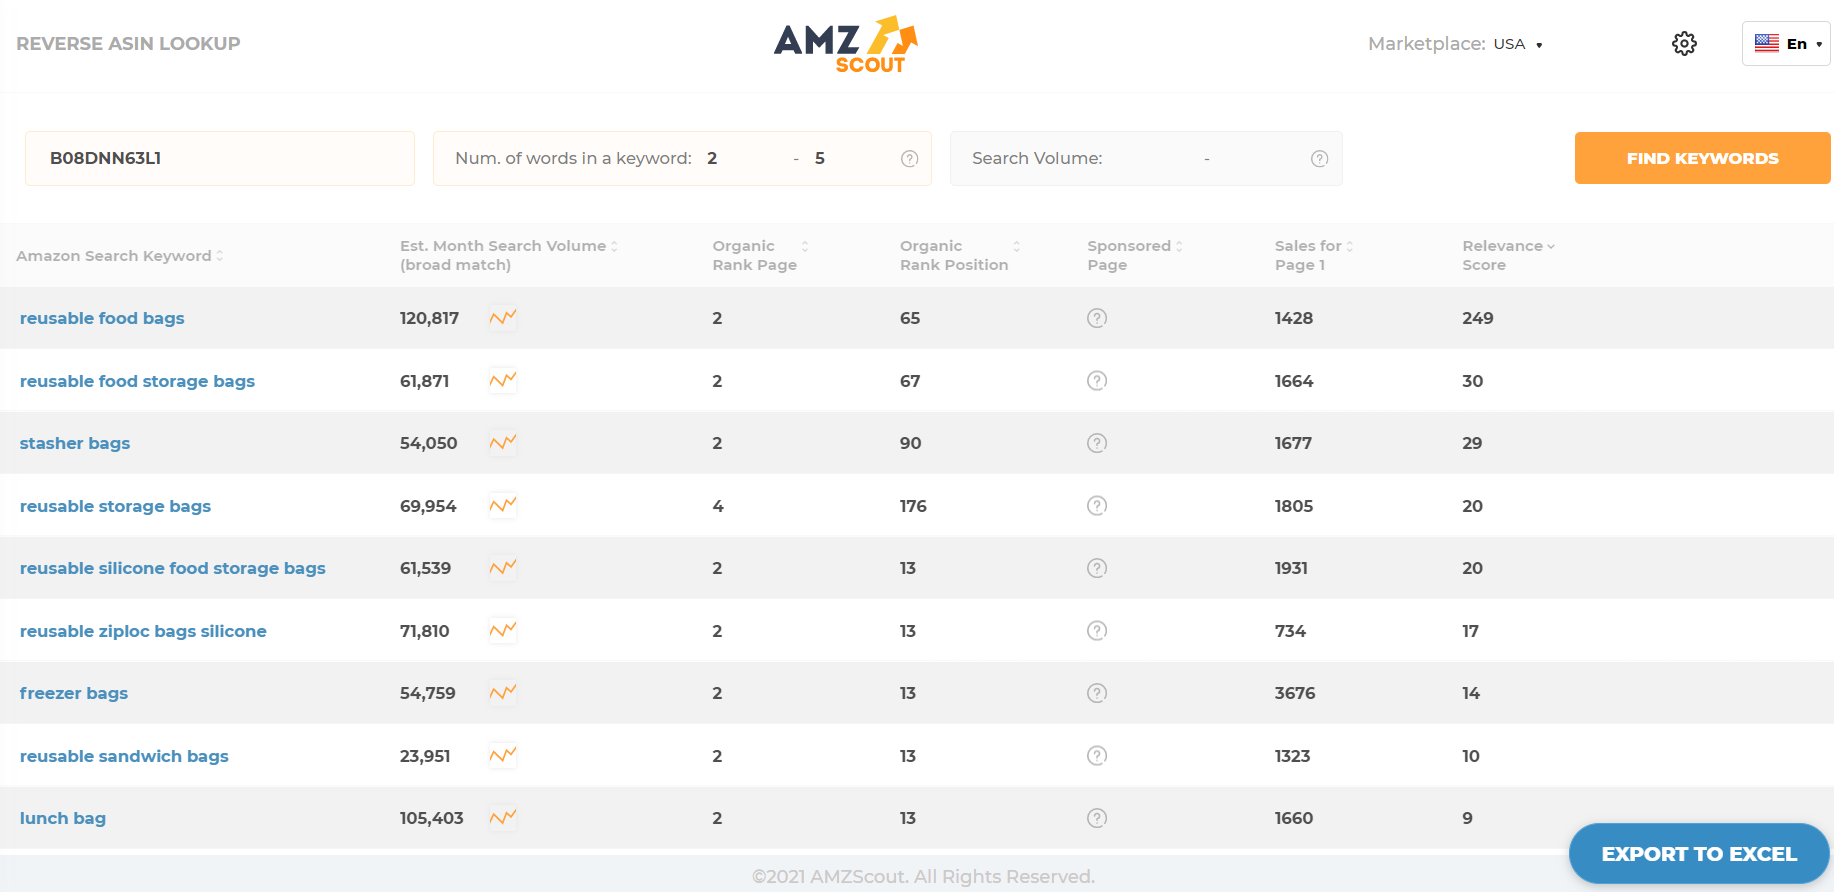 image-of-amz-scout-report